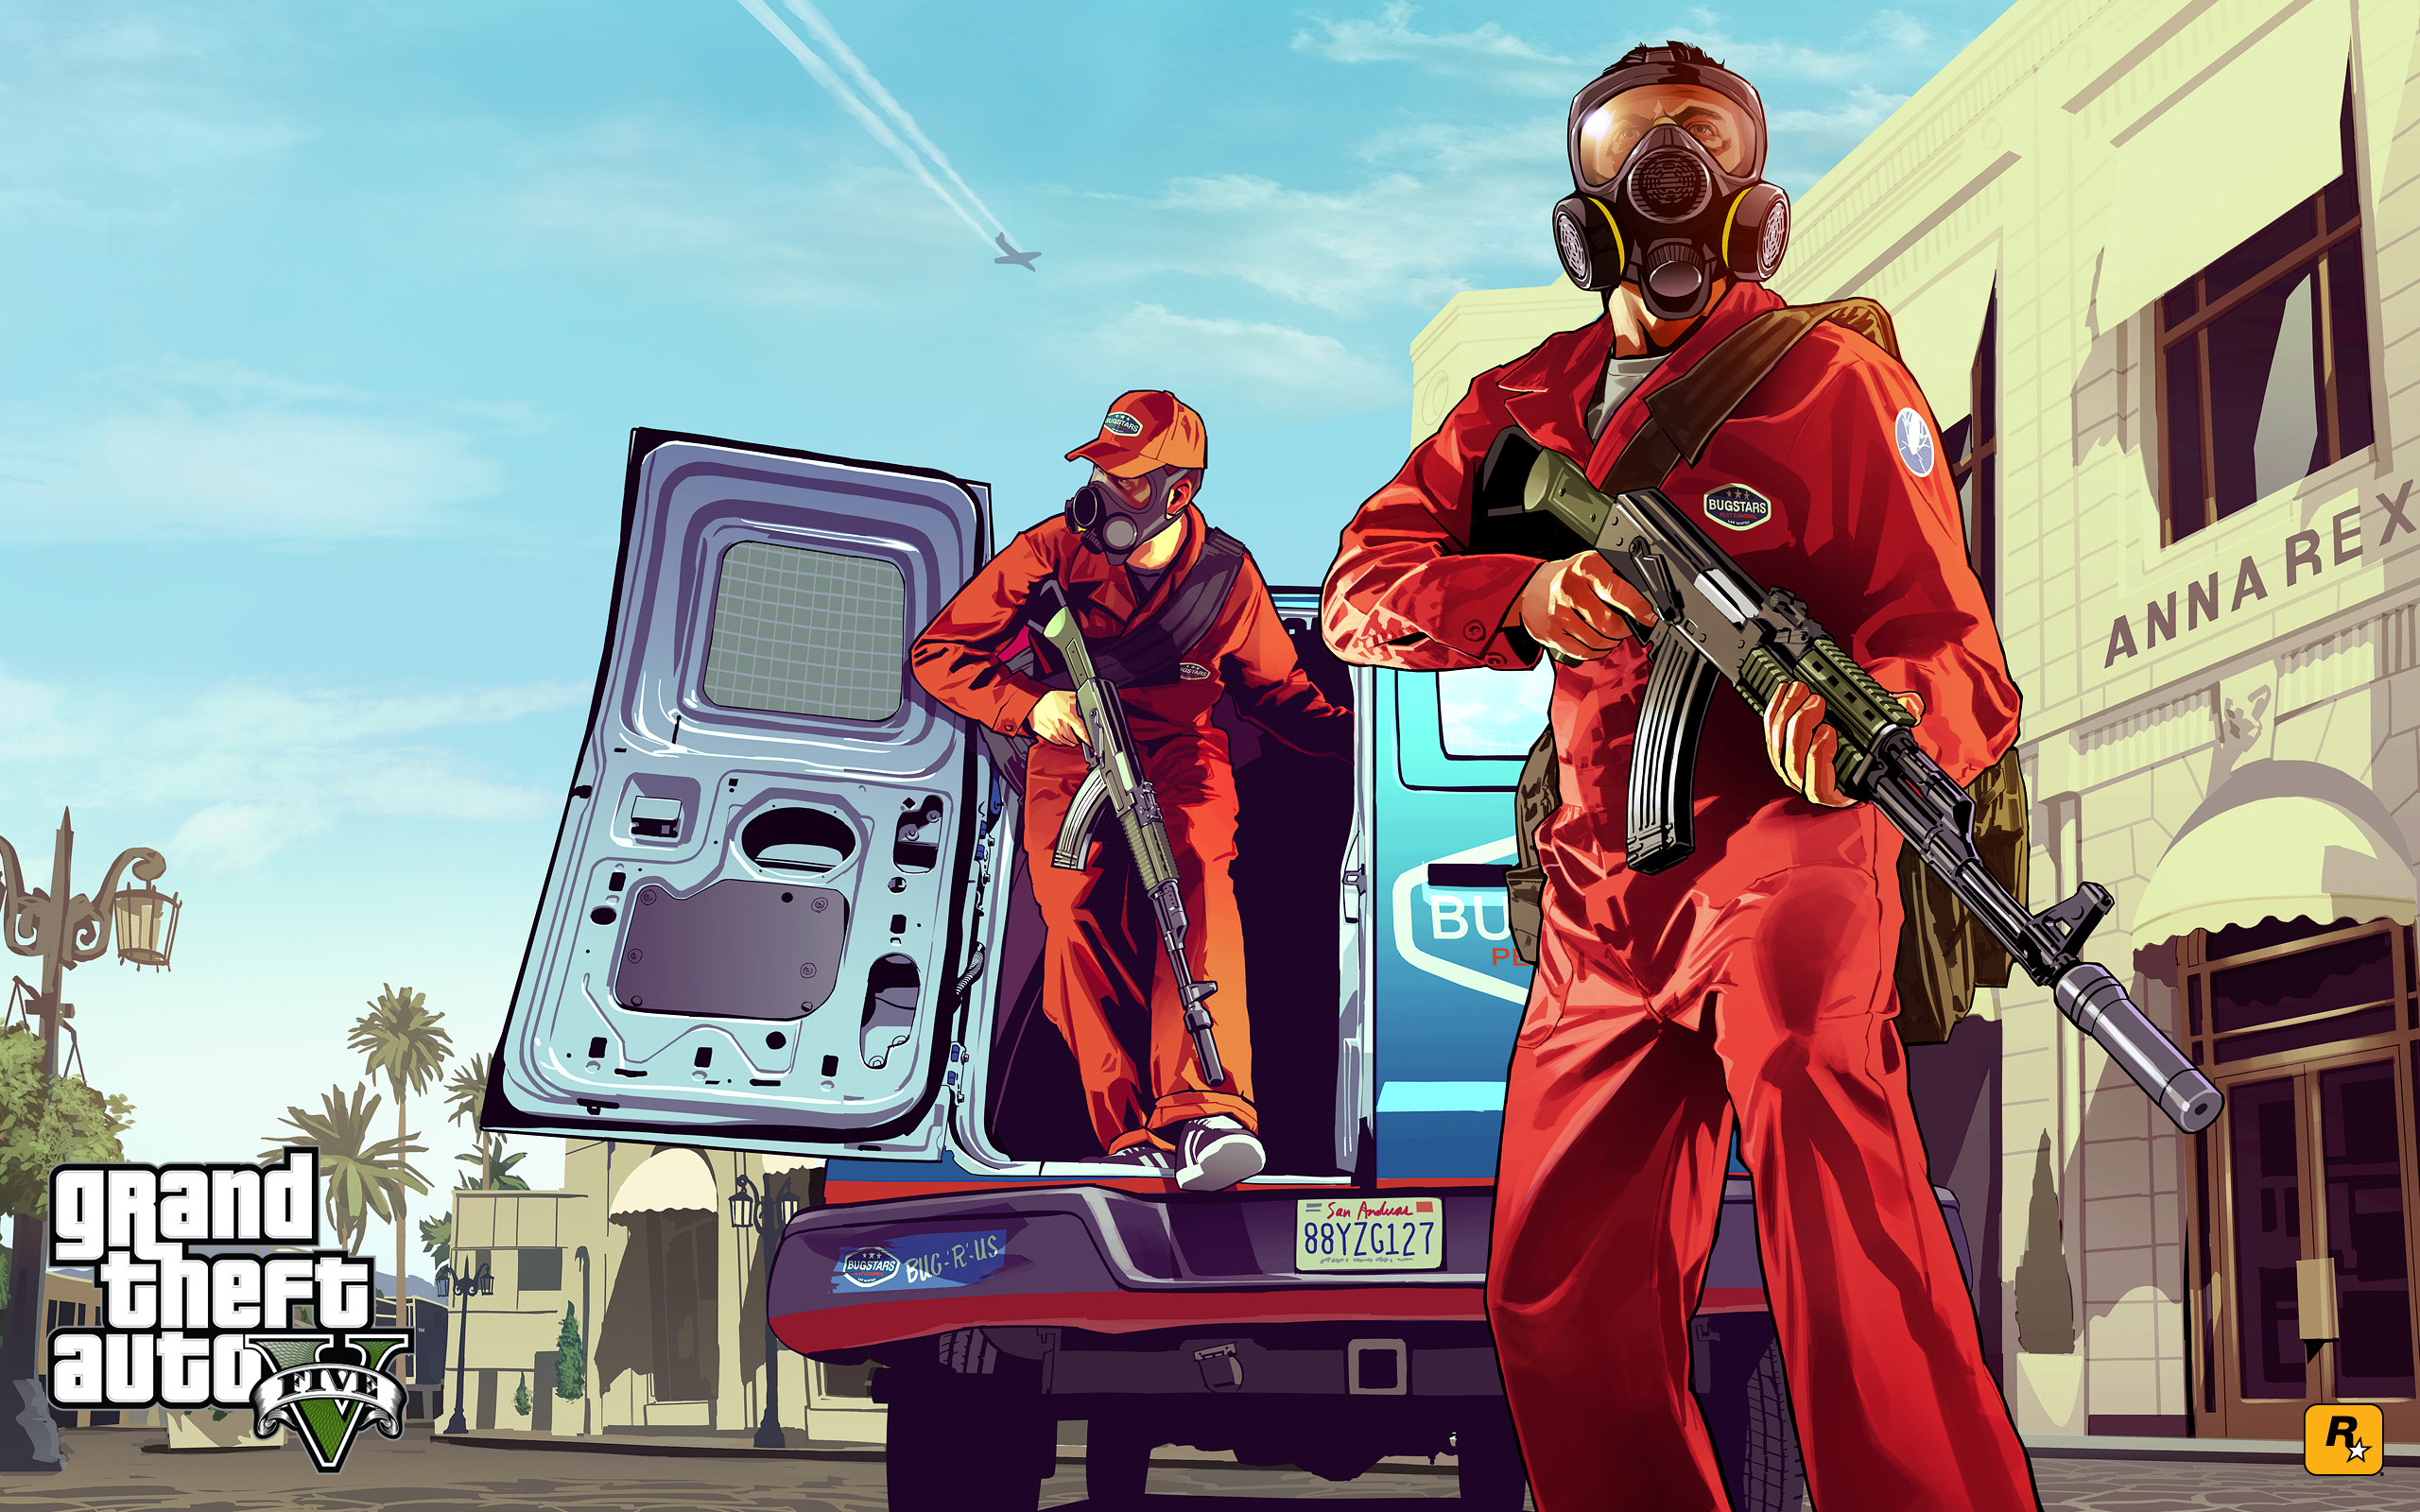 GTA V Wallpaper 1080p HD (79+ Images